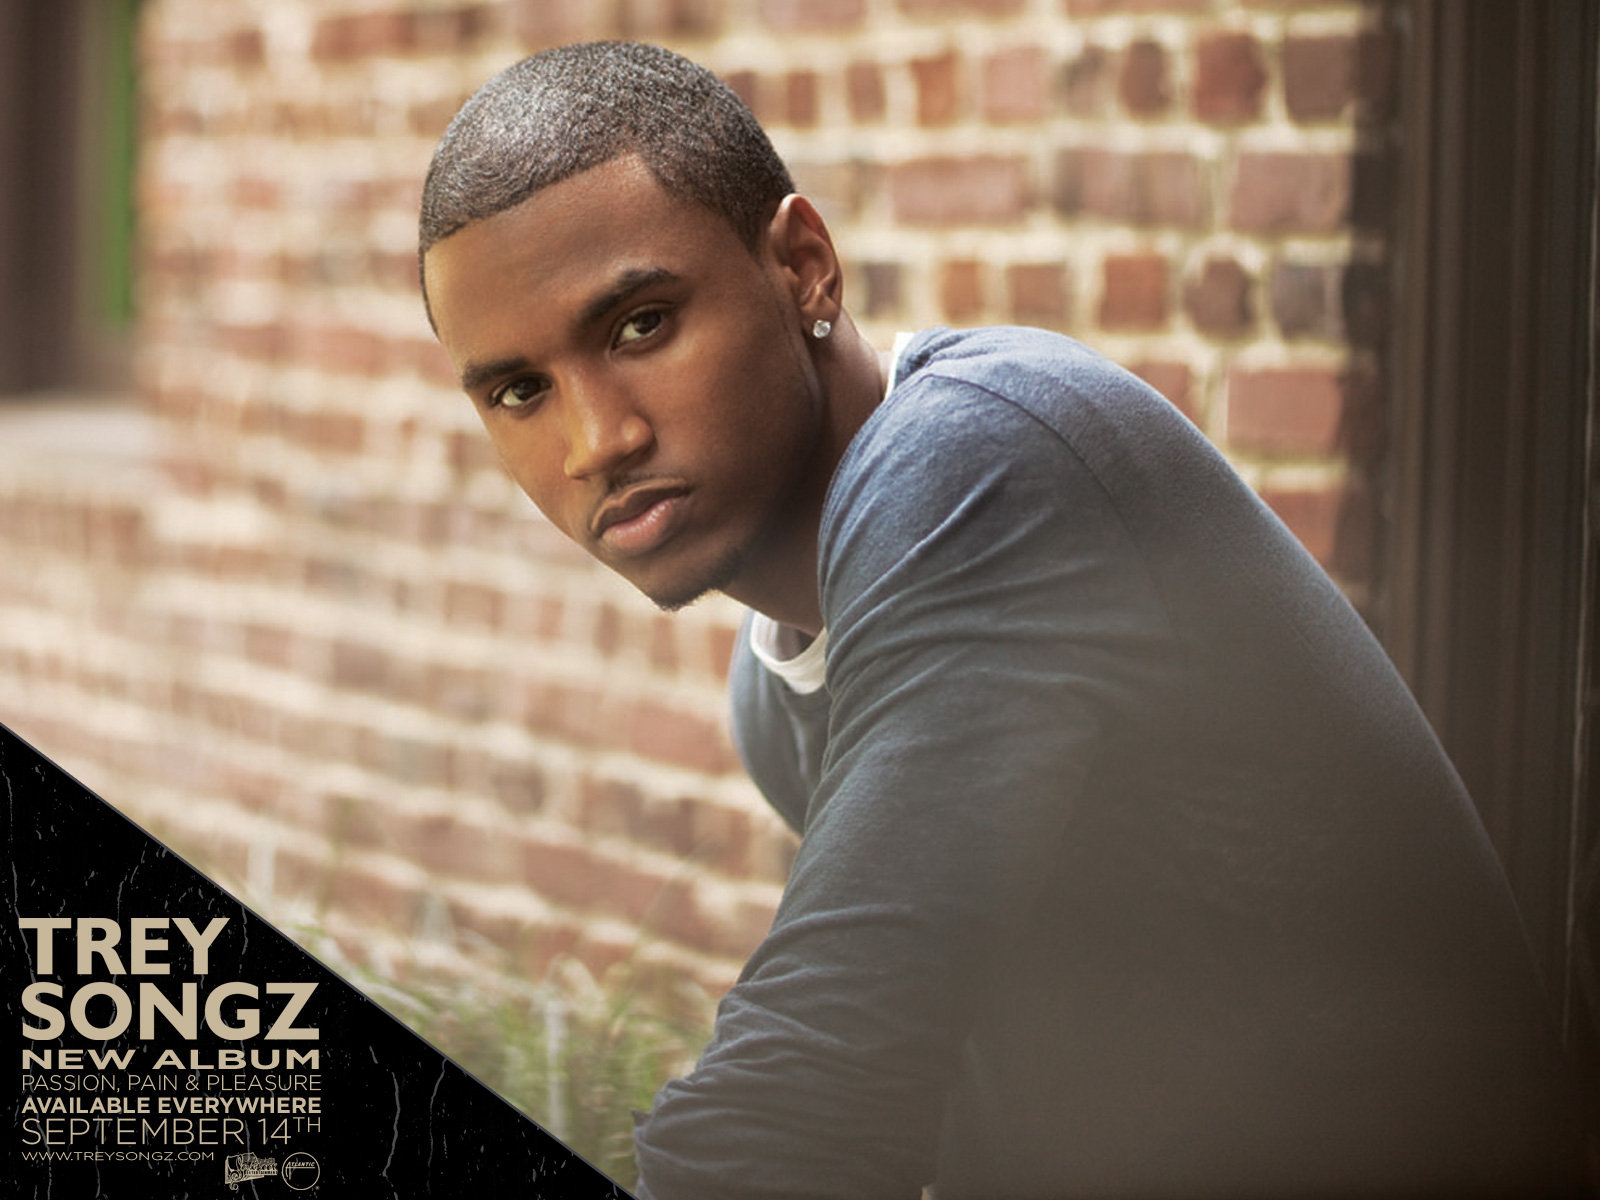 trey songz images hd - photo #25